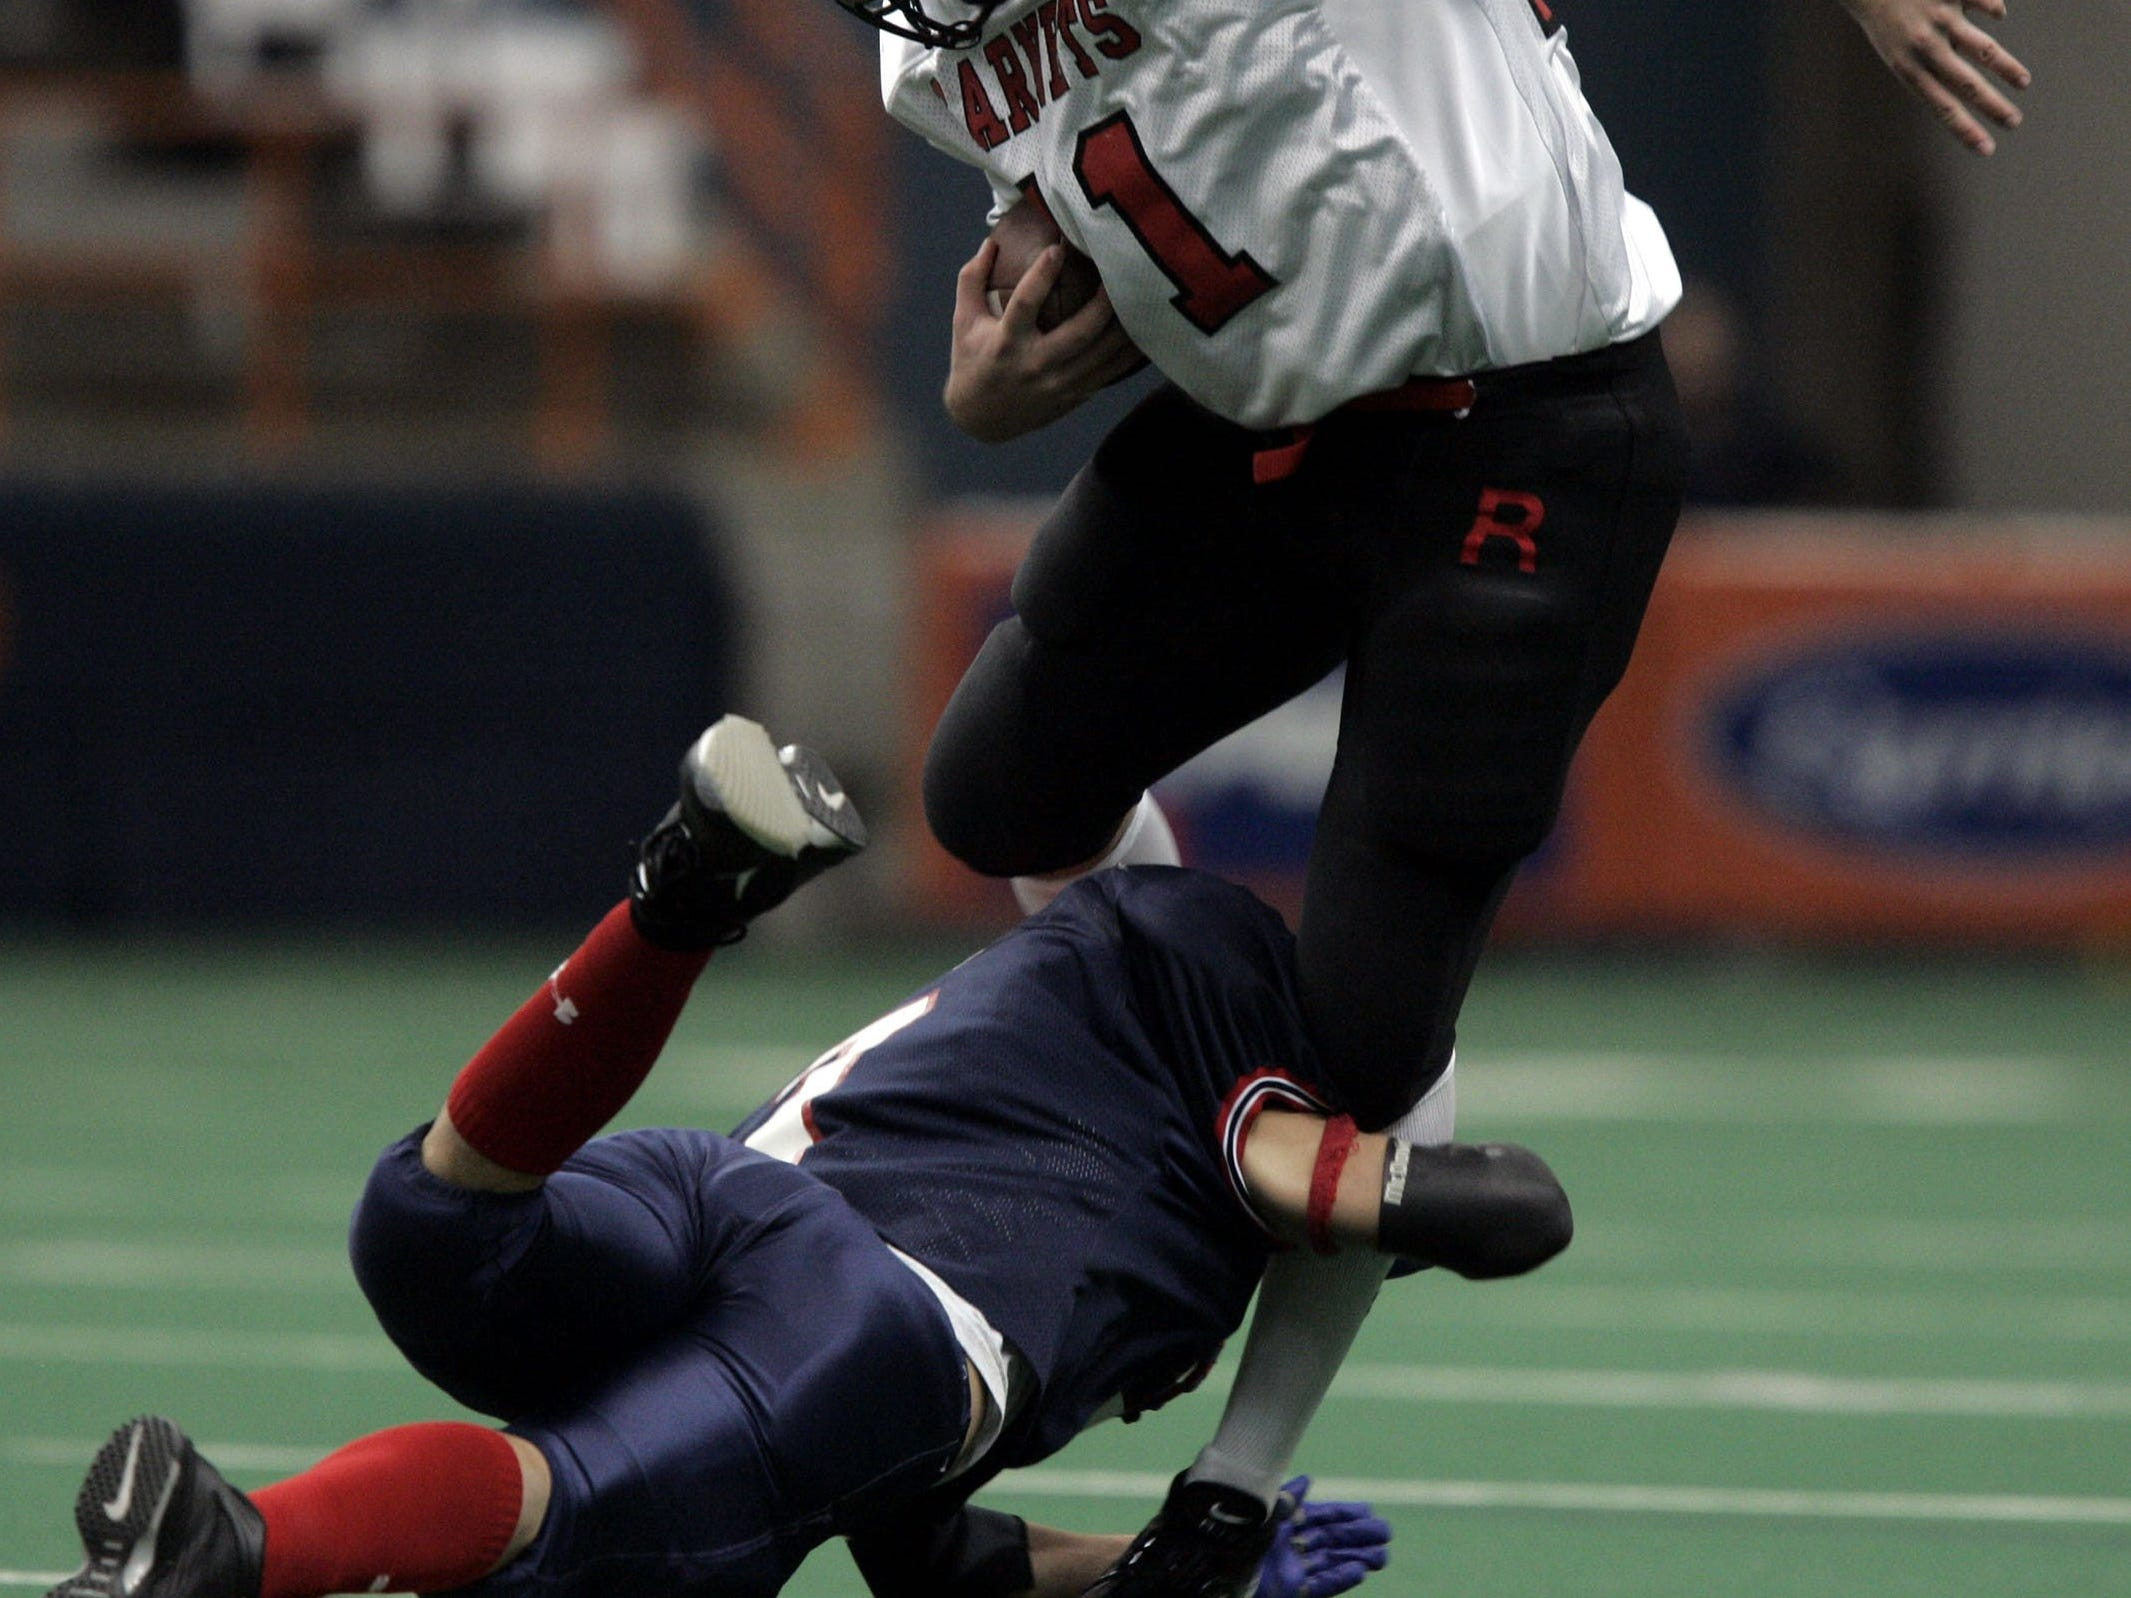 Rye's Jack Donnelly (11) is stopped on his attempt to make a first down as he is hit by Chenango Forks' Kevin Purce (7) during the Class B State Final at the Carrier Dome in Syracuse, N.Y. Nov. 26, 2004. Chenango Forks won, 48-0.